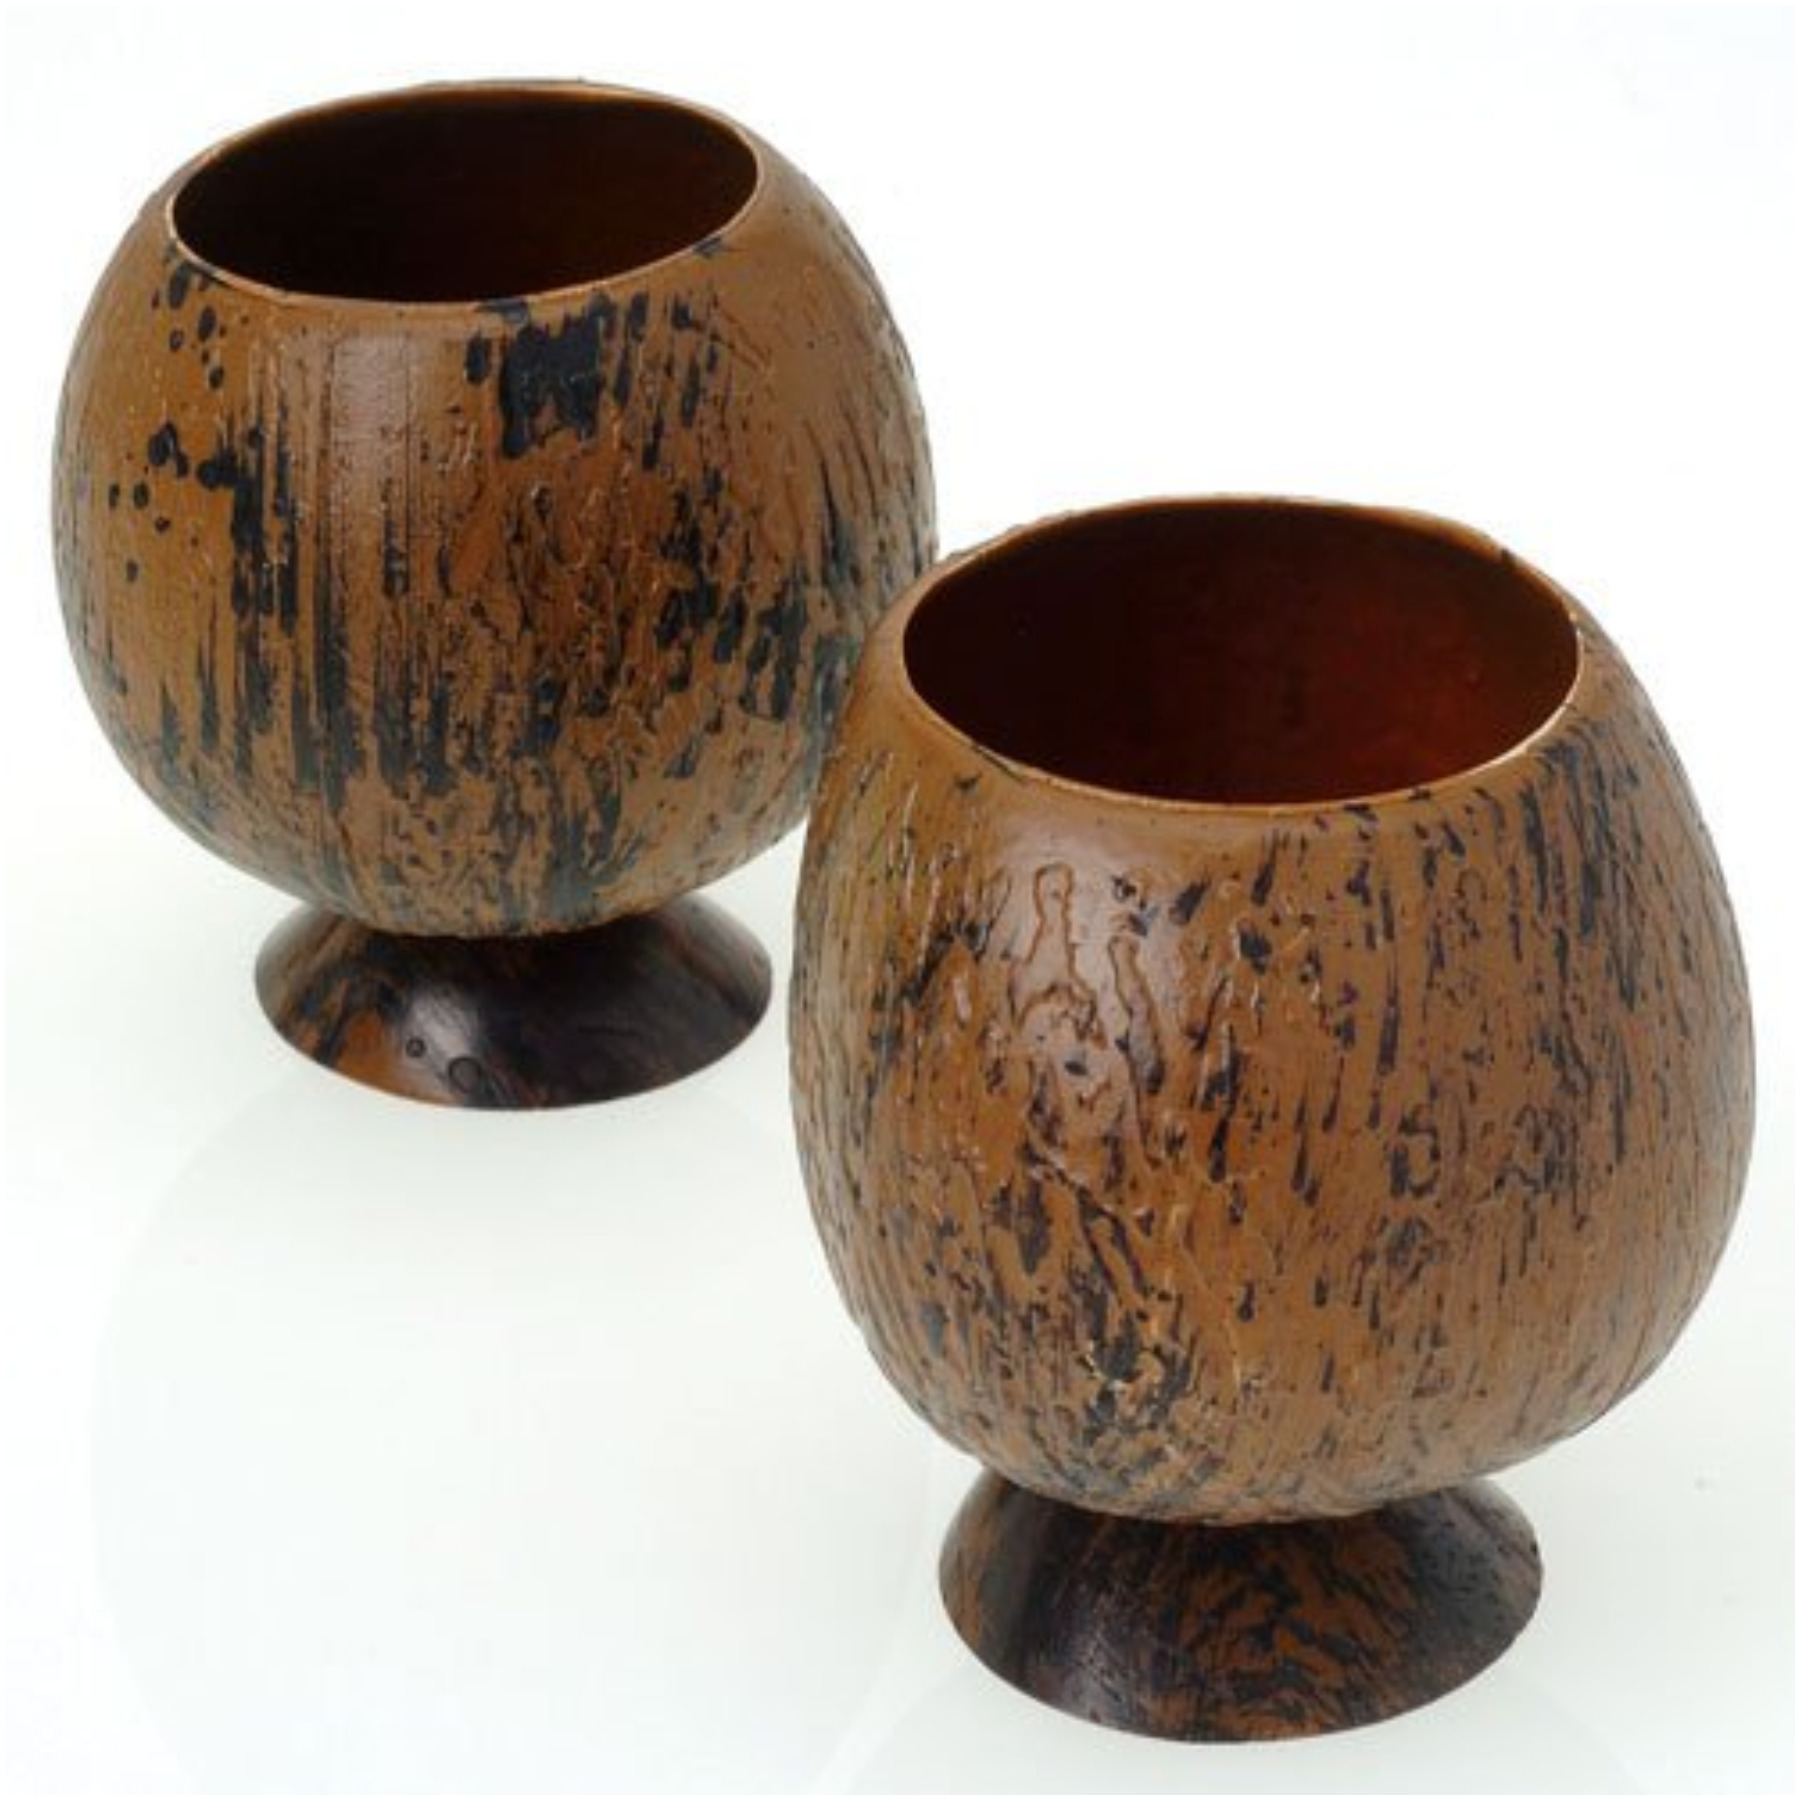 Coconut Drinking Cups By U.S. Toy